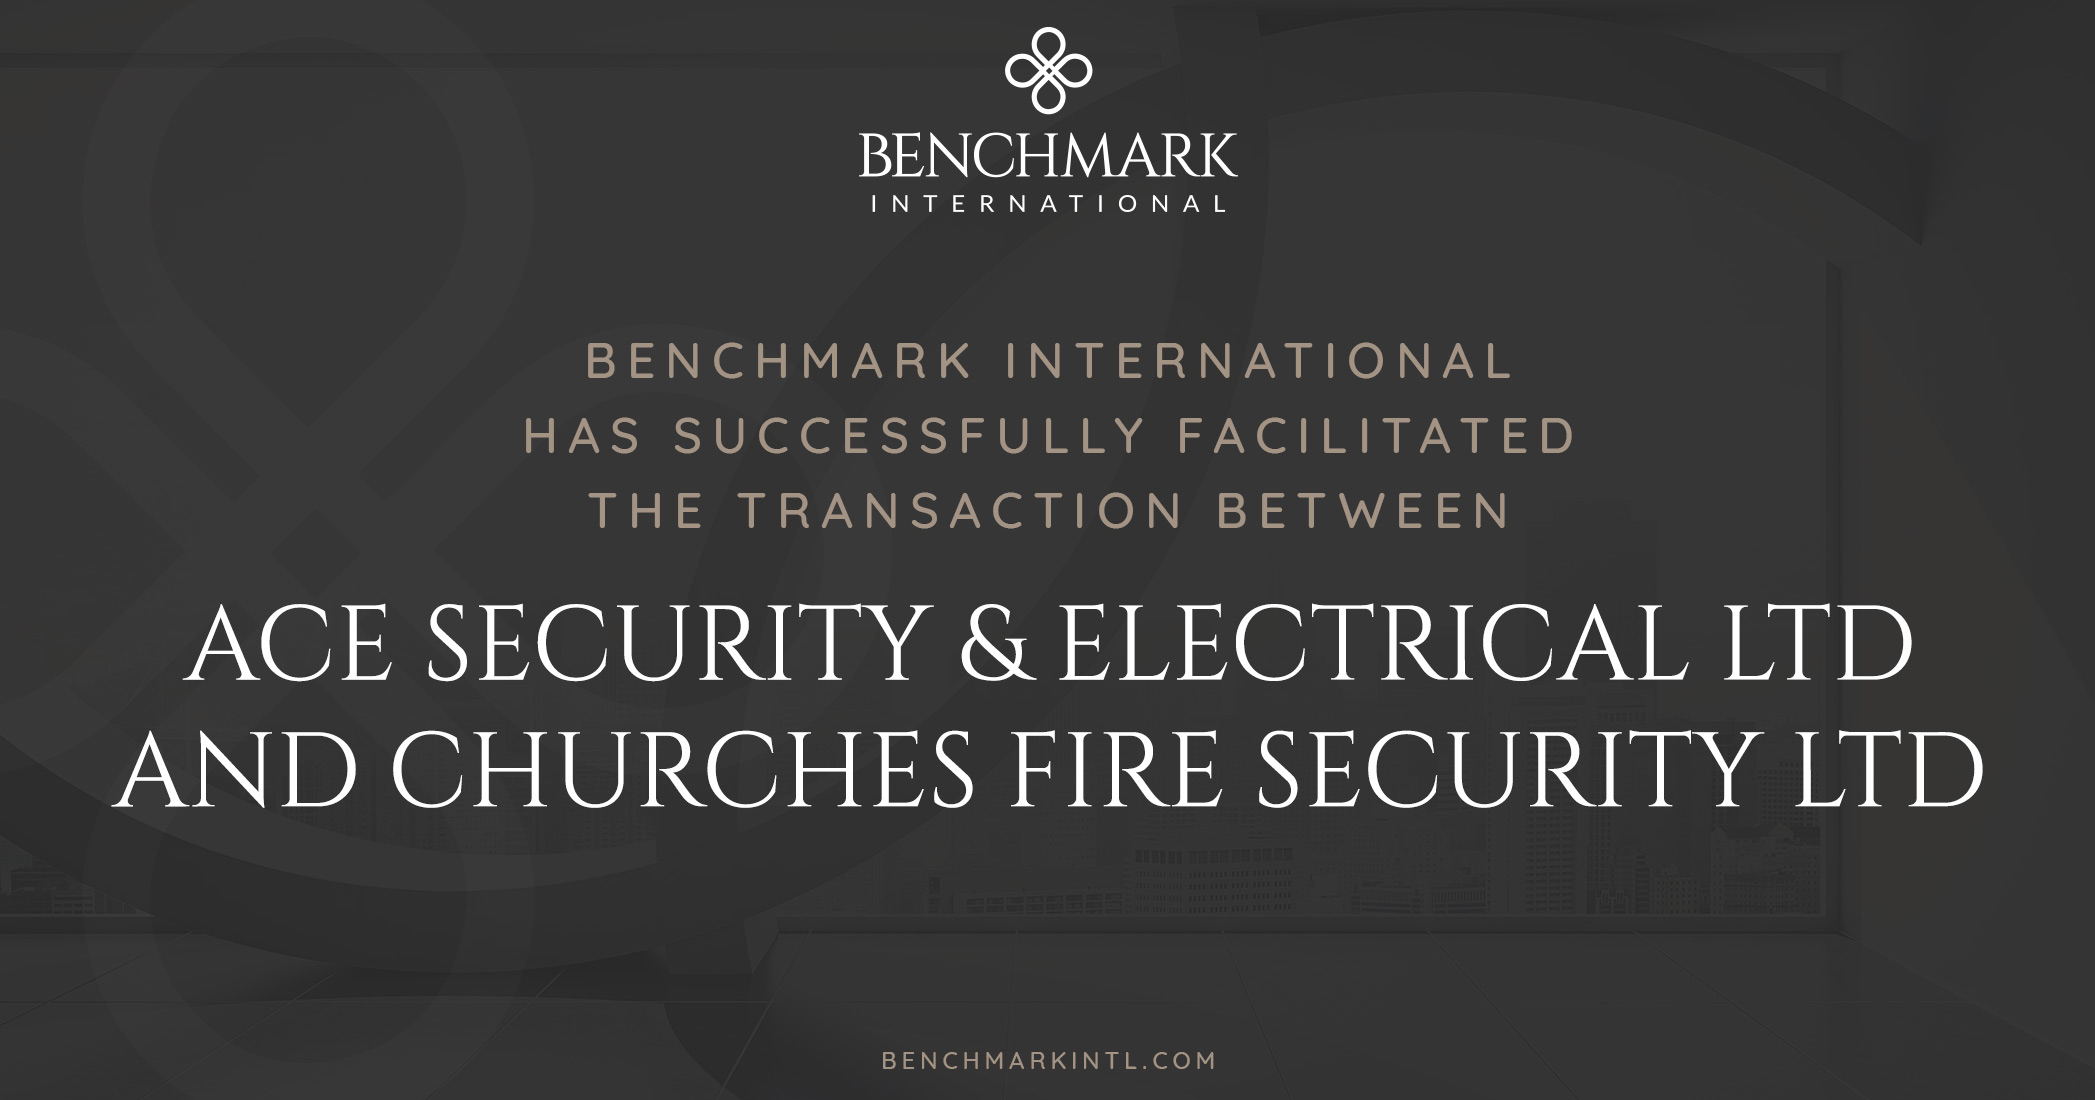 Benchmark International Successfully Facilitated the Transaction Between Ace Security & Electrical Ltd and Churches Fire Security Ltd